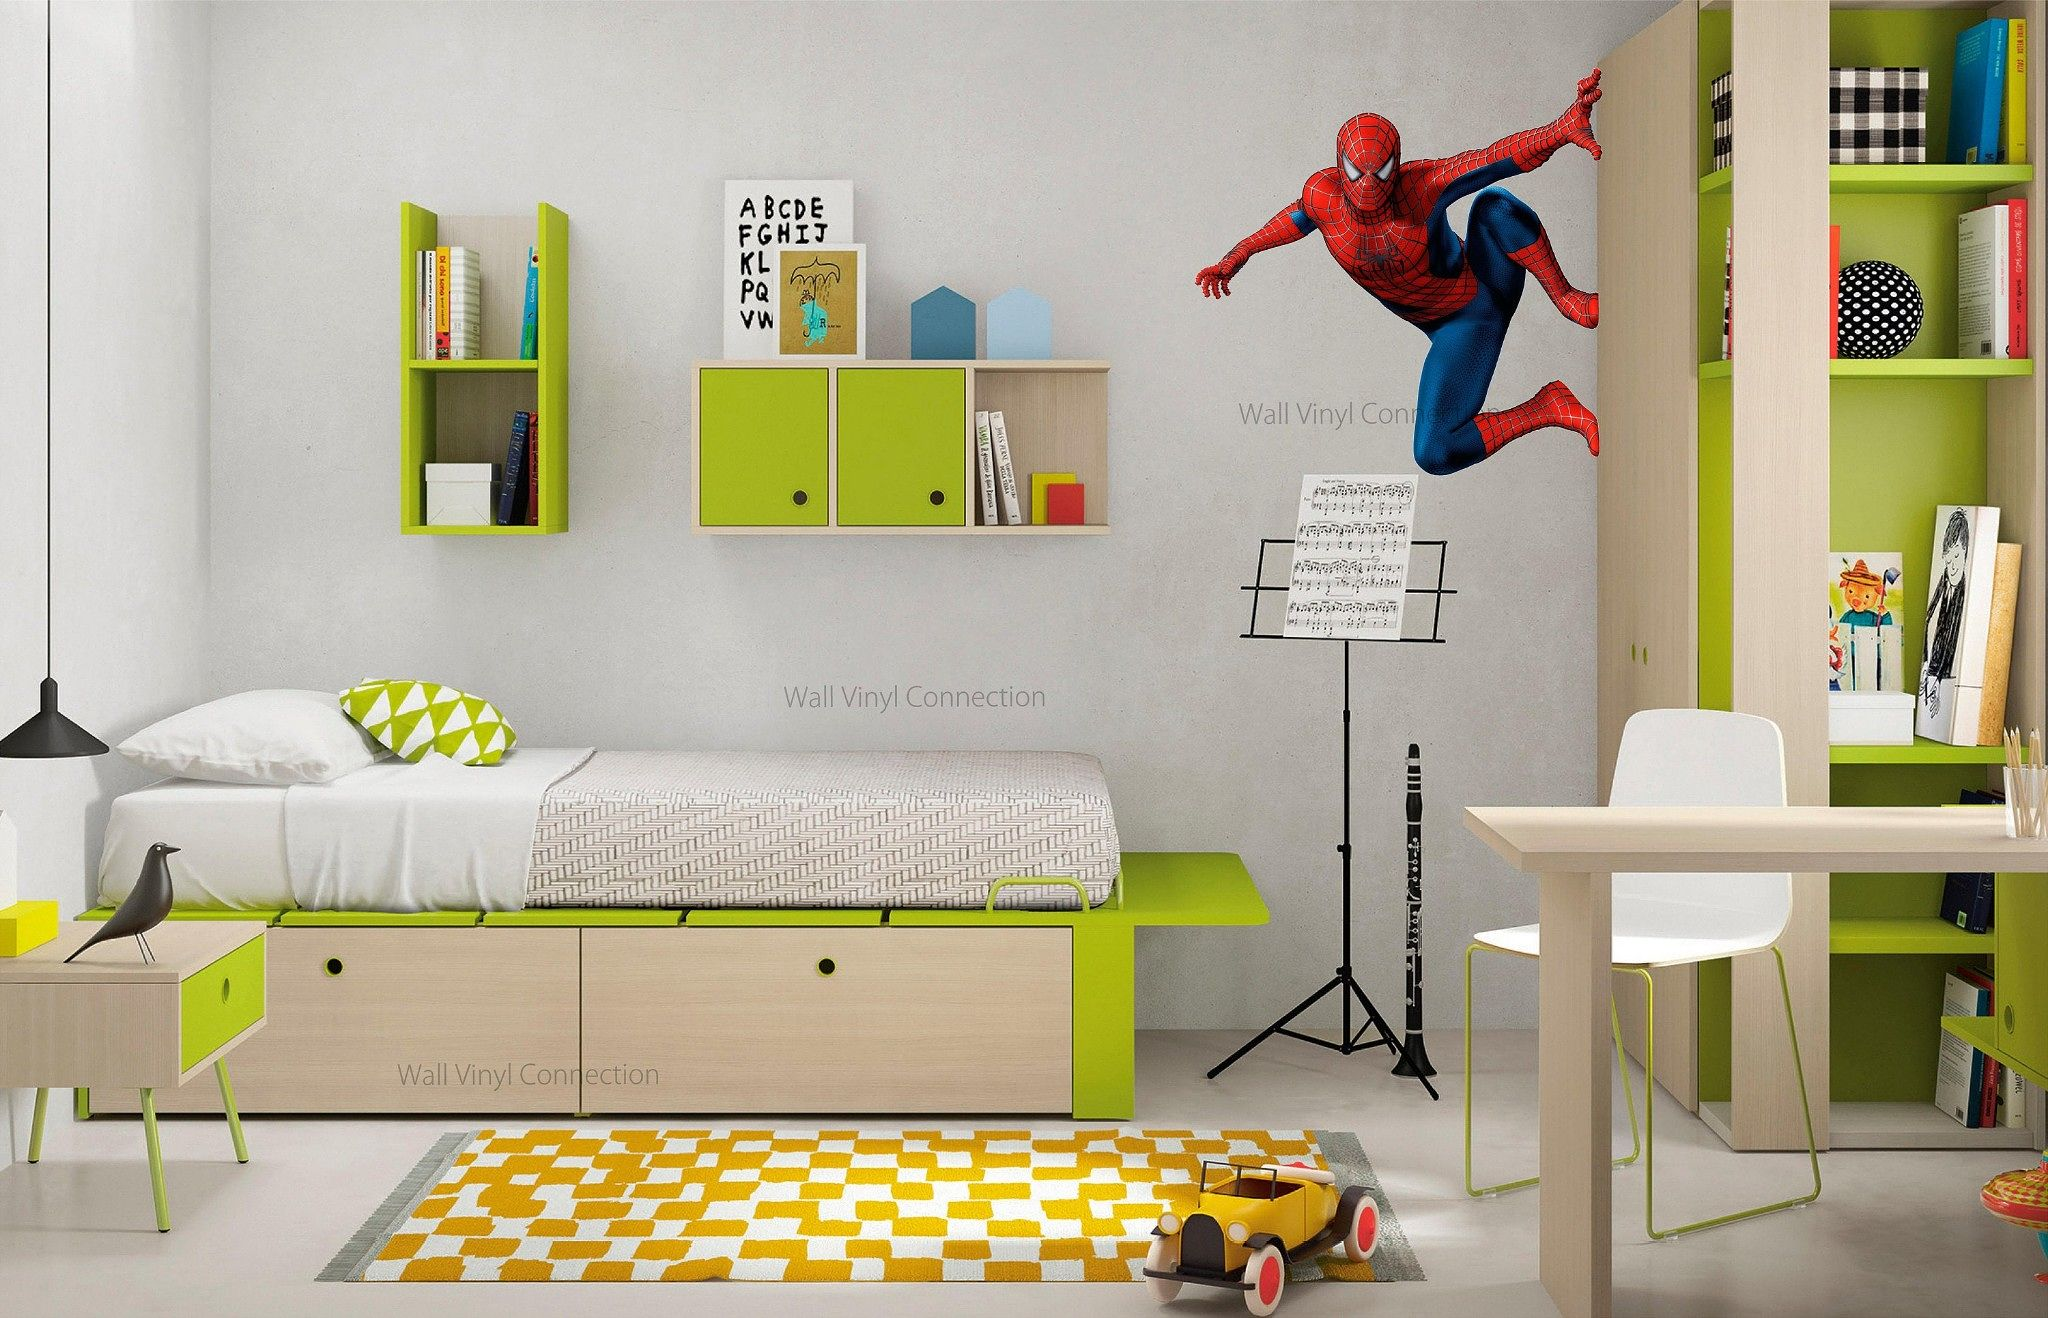 Wall Vinyl Connection